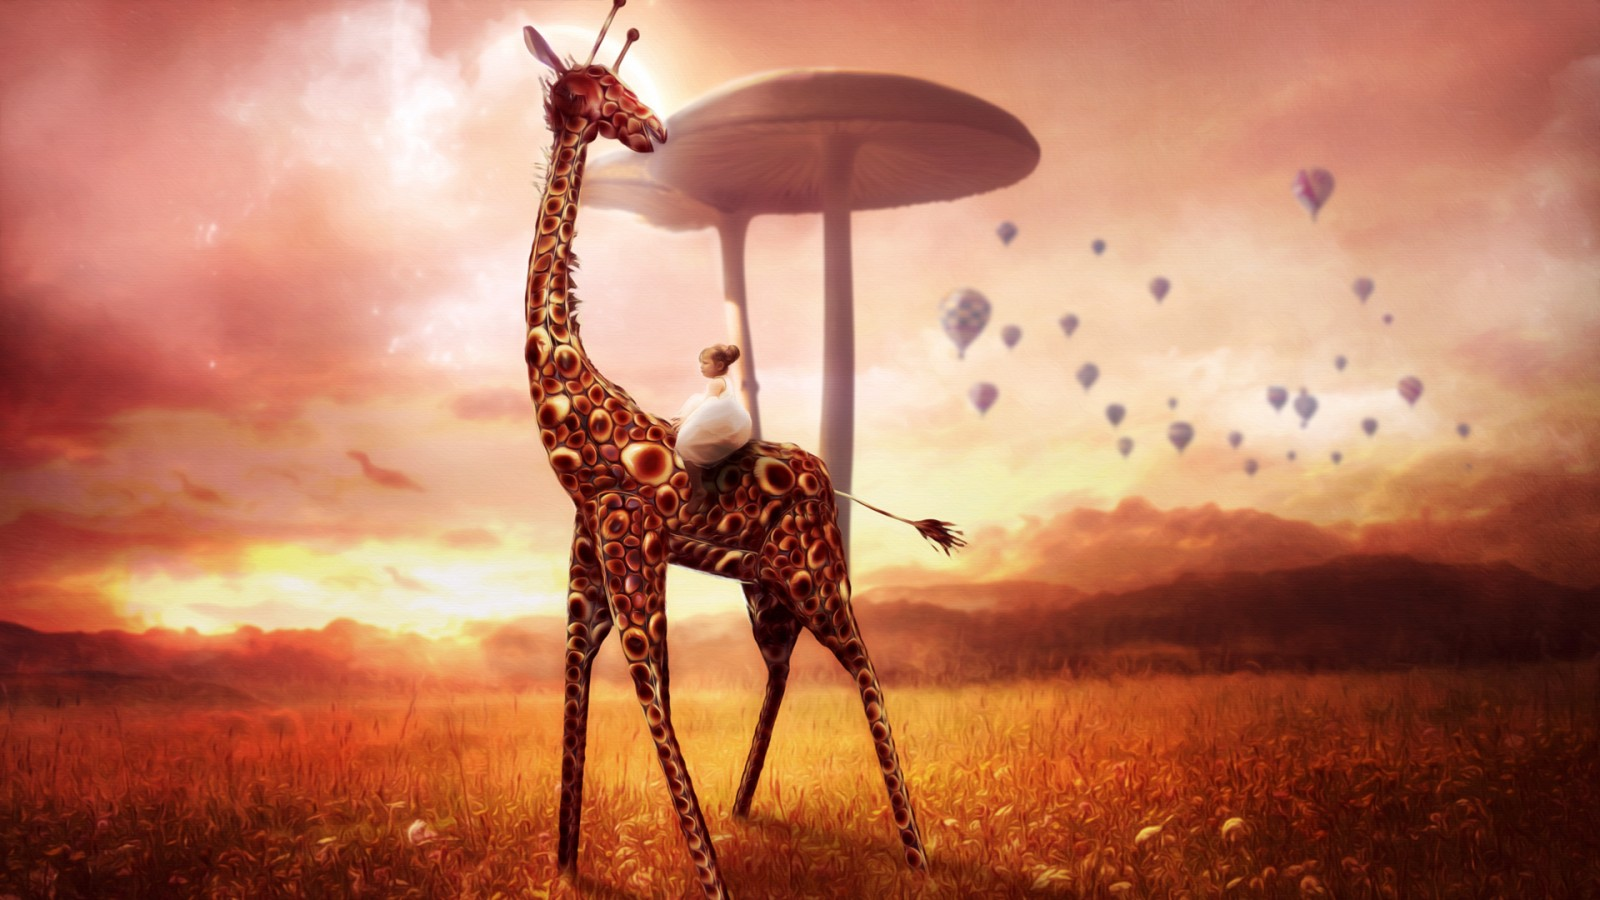 Couple Cartoon Wallpaper With Quotes Giraffe Dream Wallpapers Hd Wallpapers Id 13793